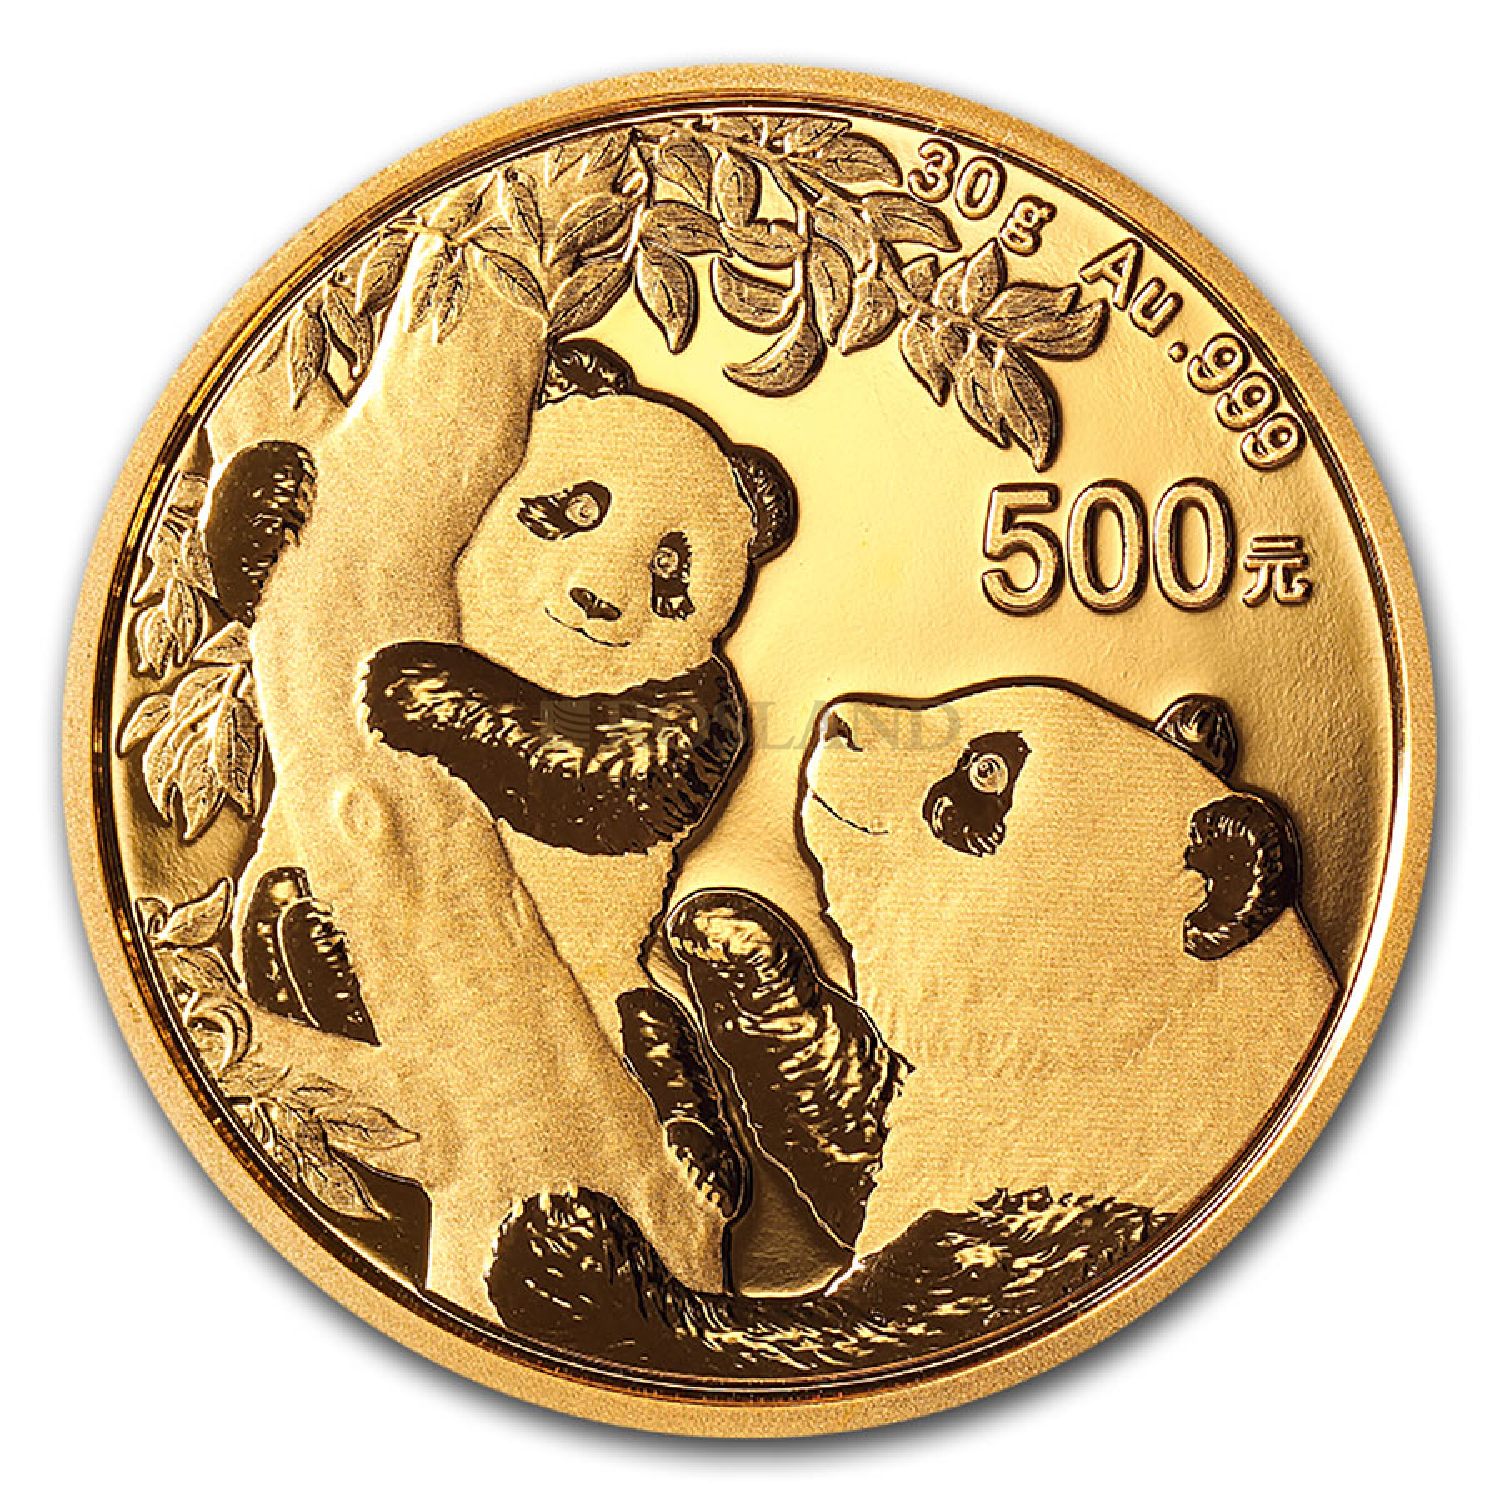 30 Gramm Goldmünze China Panda 2021